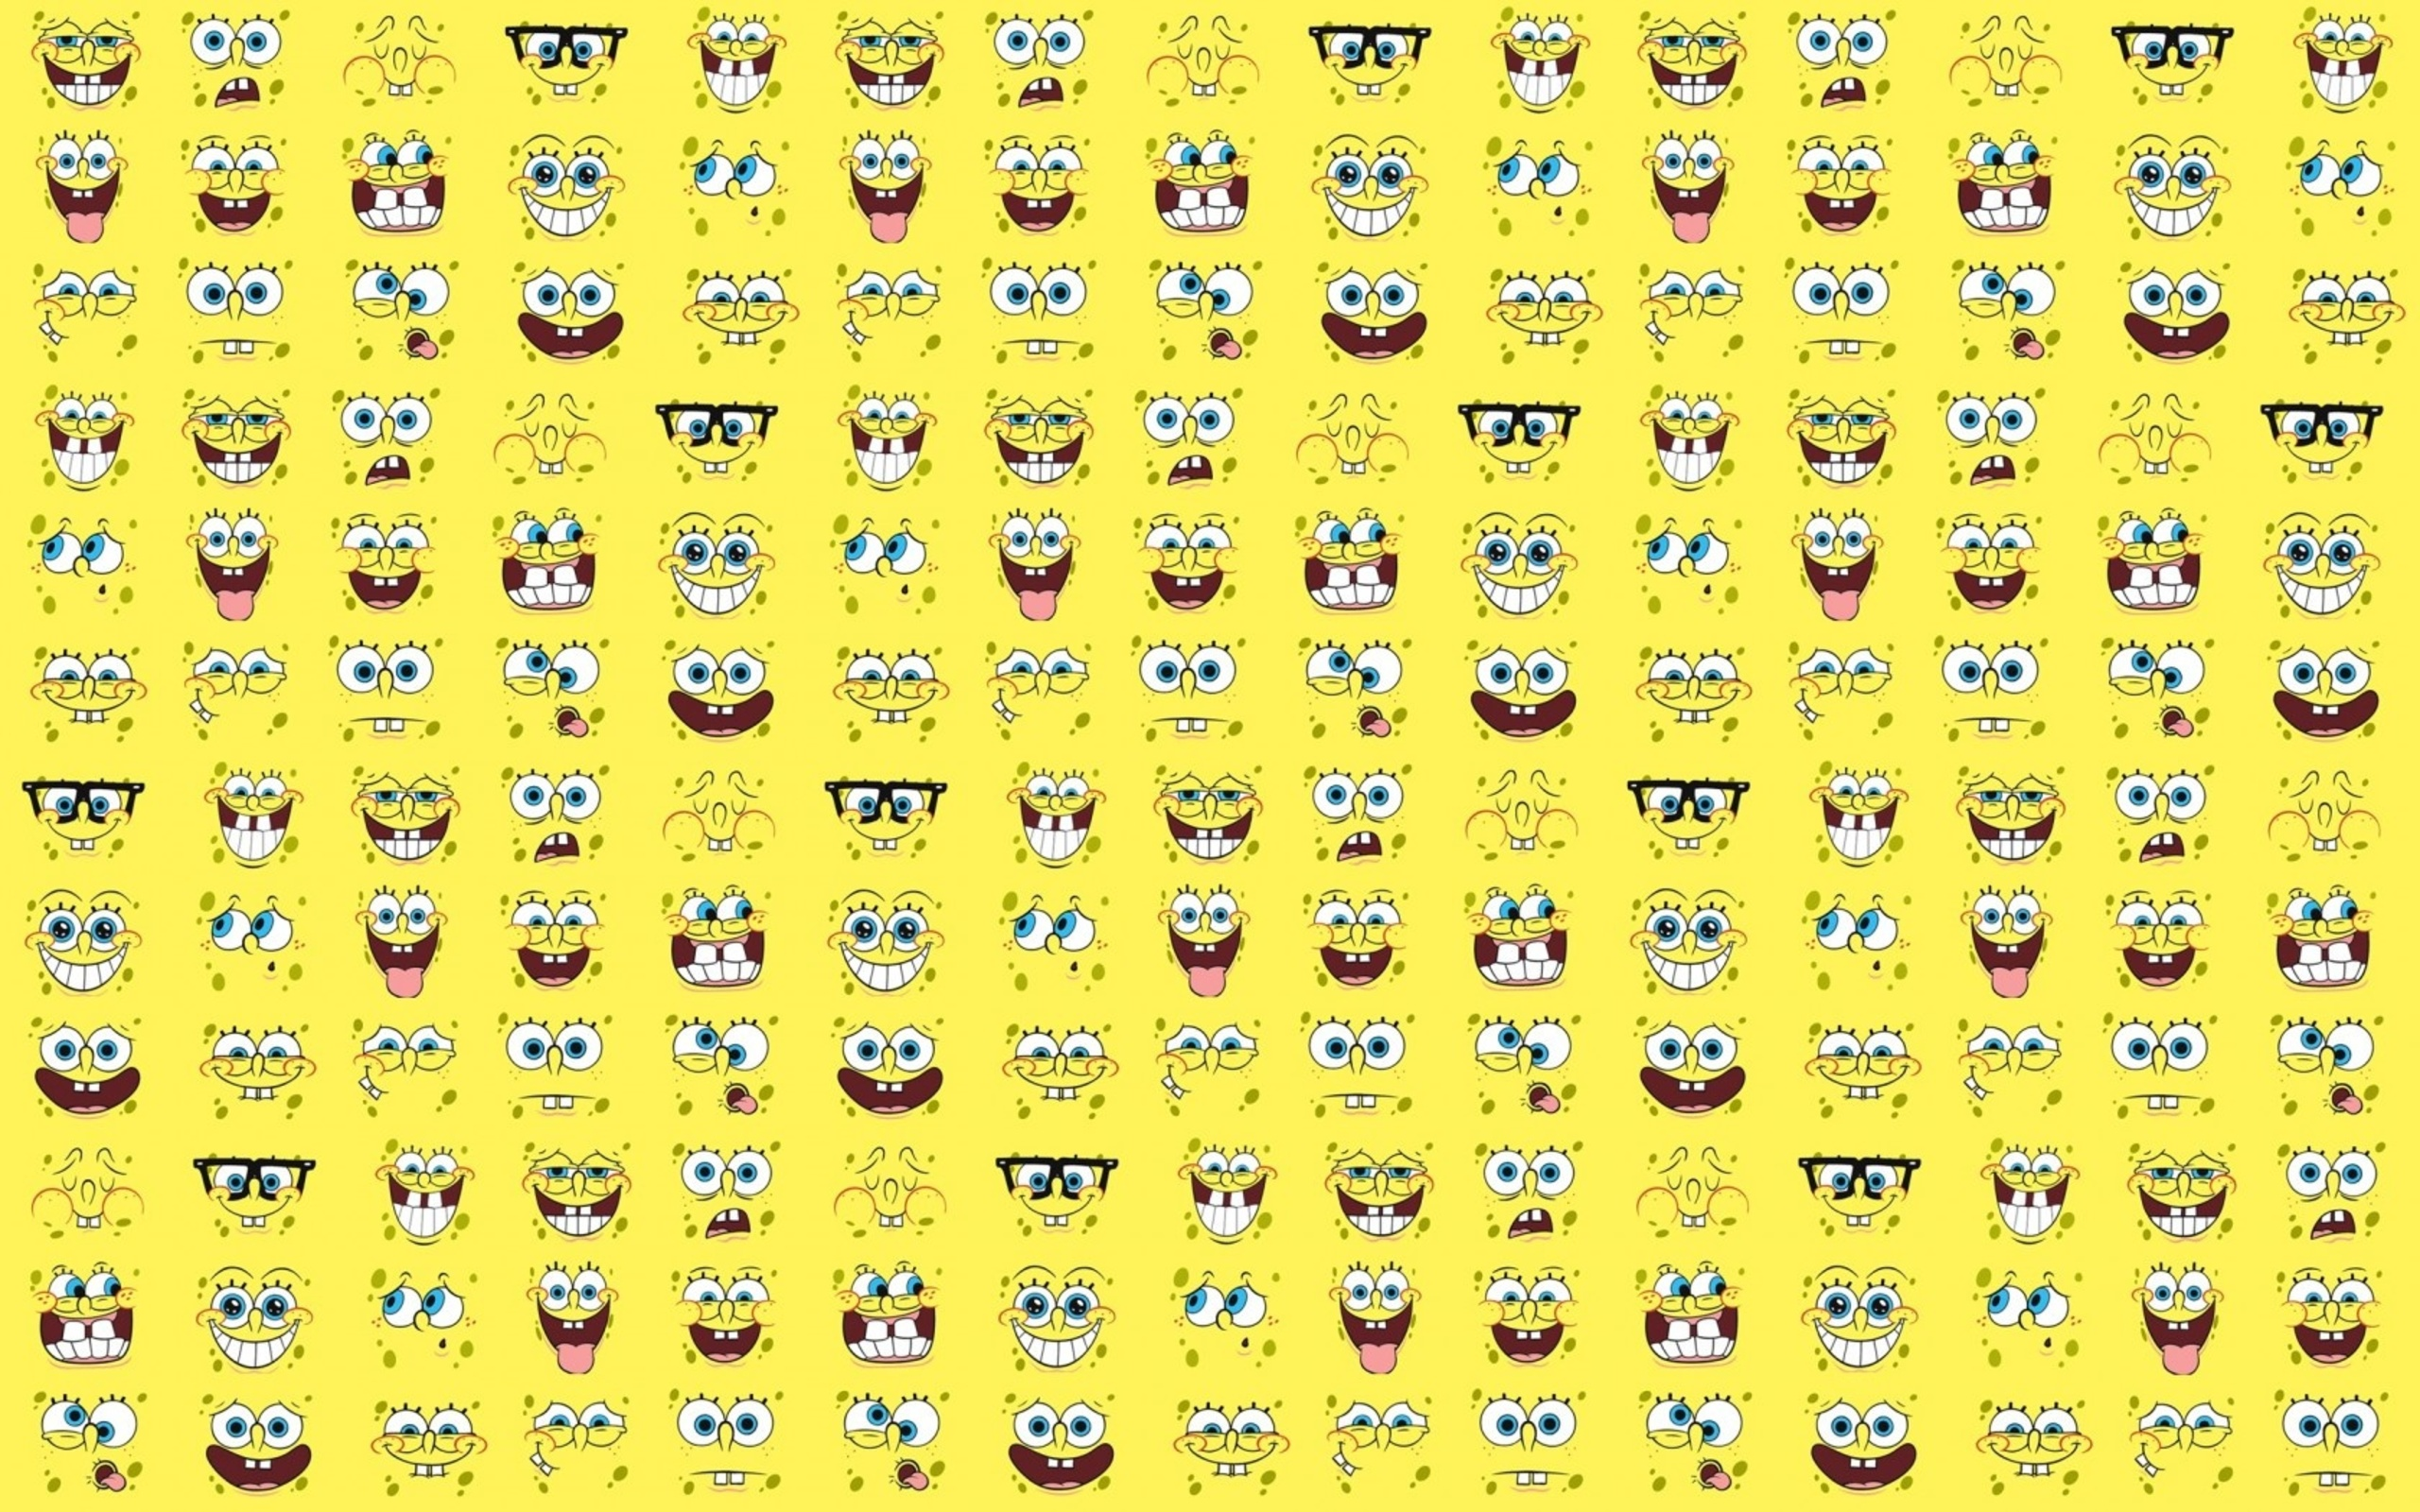 spongebob squarepants widescreen wallpaper 49594